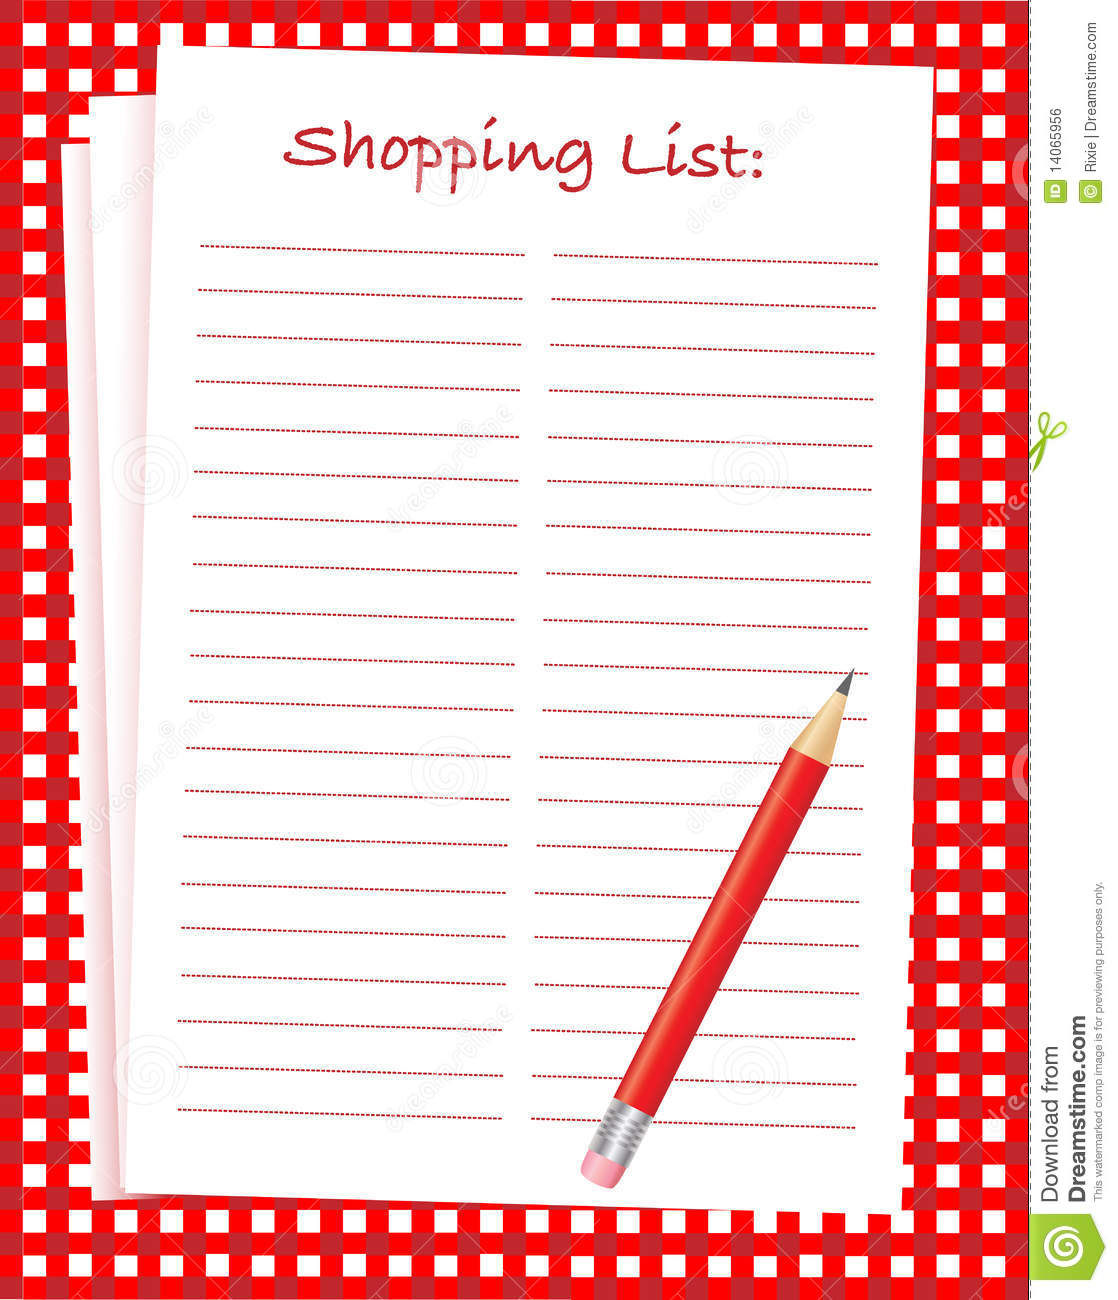 Shopping List Royalty Free Image Image 14065956 – Shopping List Format